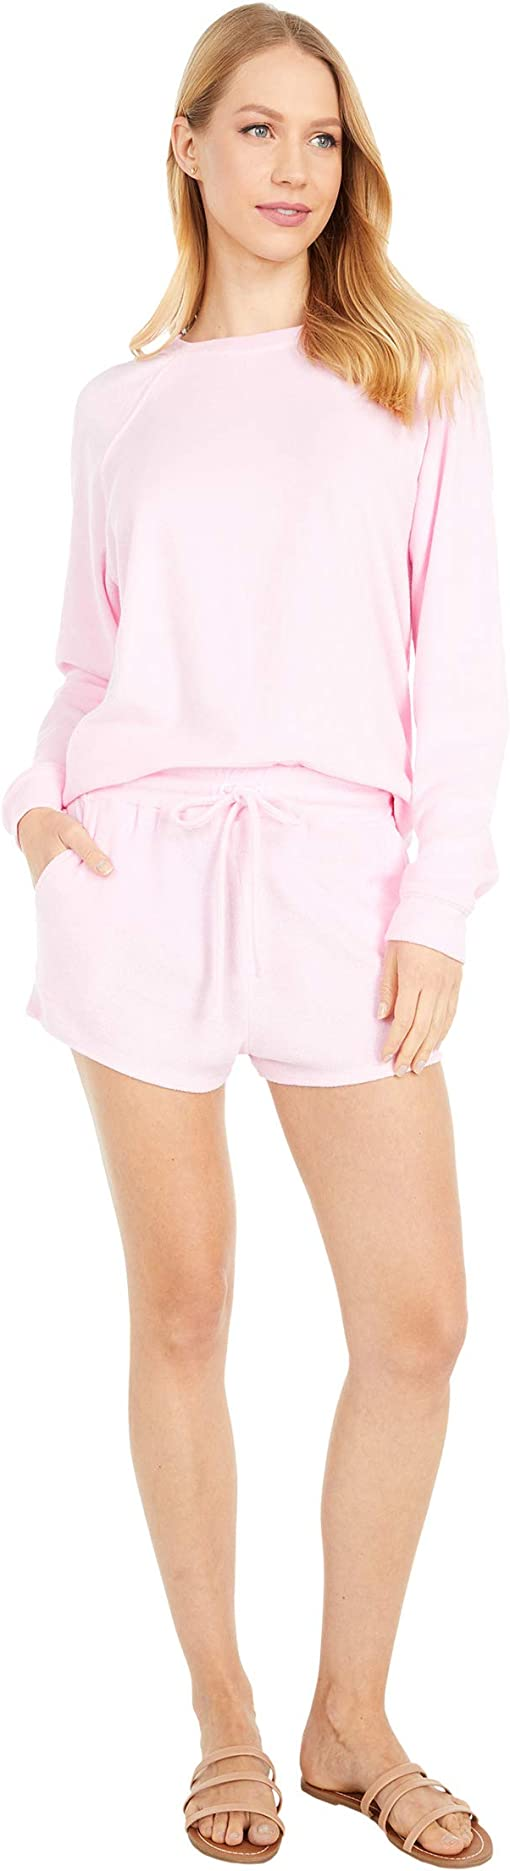 INFITTY Womens Tie Dye Printed Short Pajamas Set Short//Long Sleeve Tops and Shorts Pj Sets Loungewear Sleepwear Nightwear